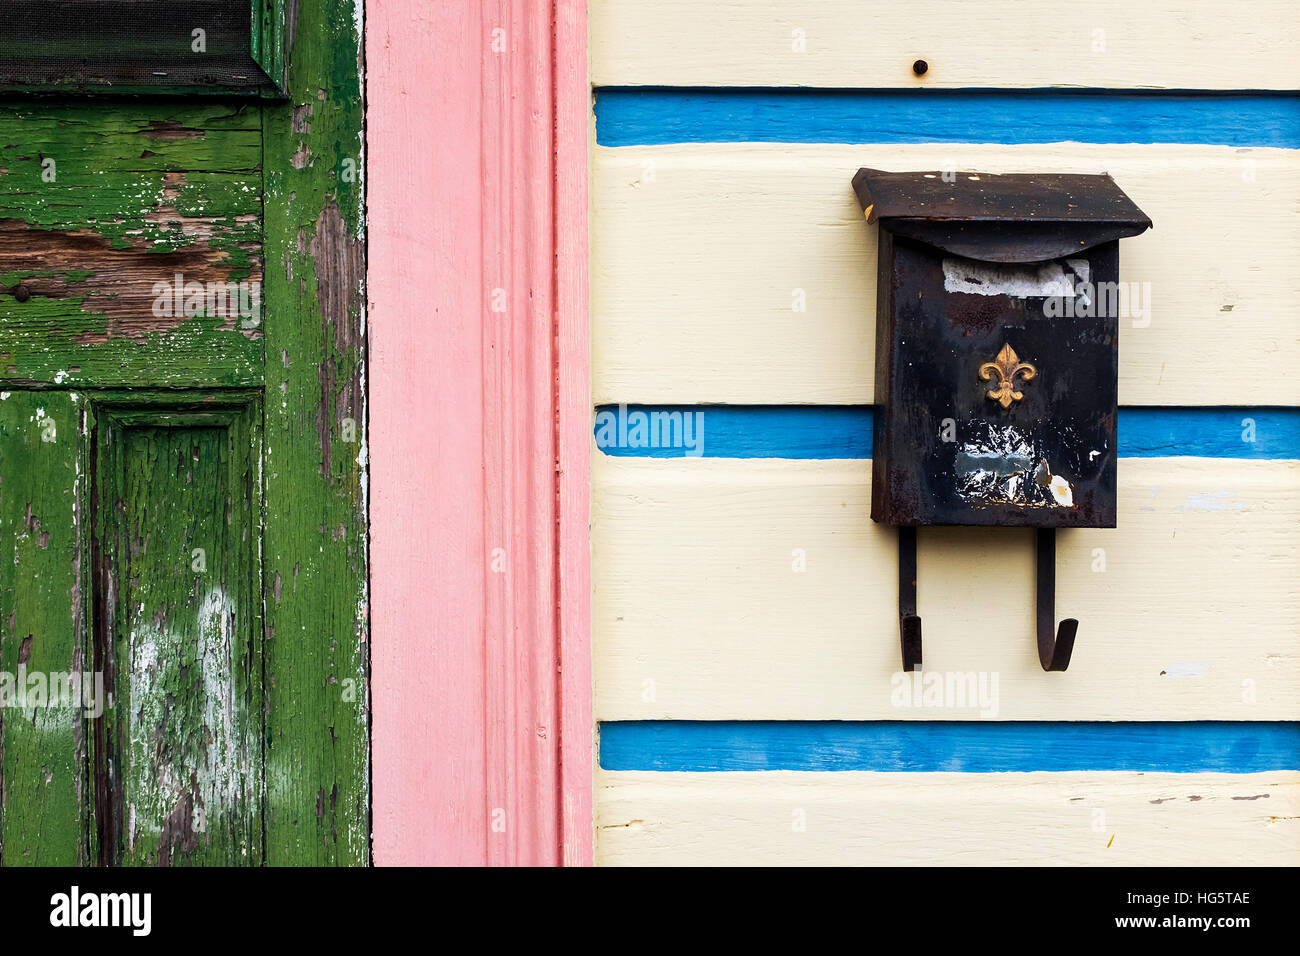 Detail Of The Facade Of A Colorful House In New Orleans, With An Old Mailbox  With The Fleur De Lis